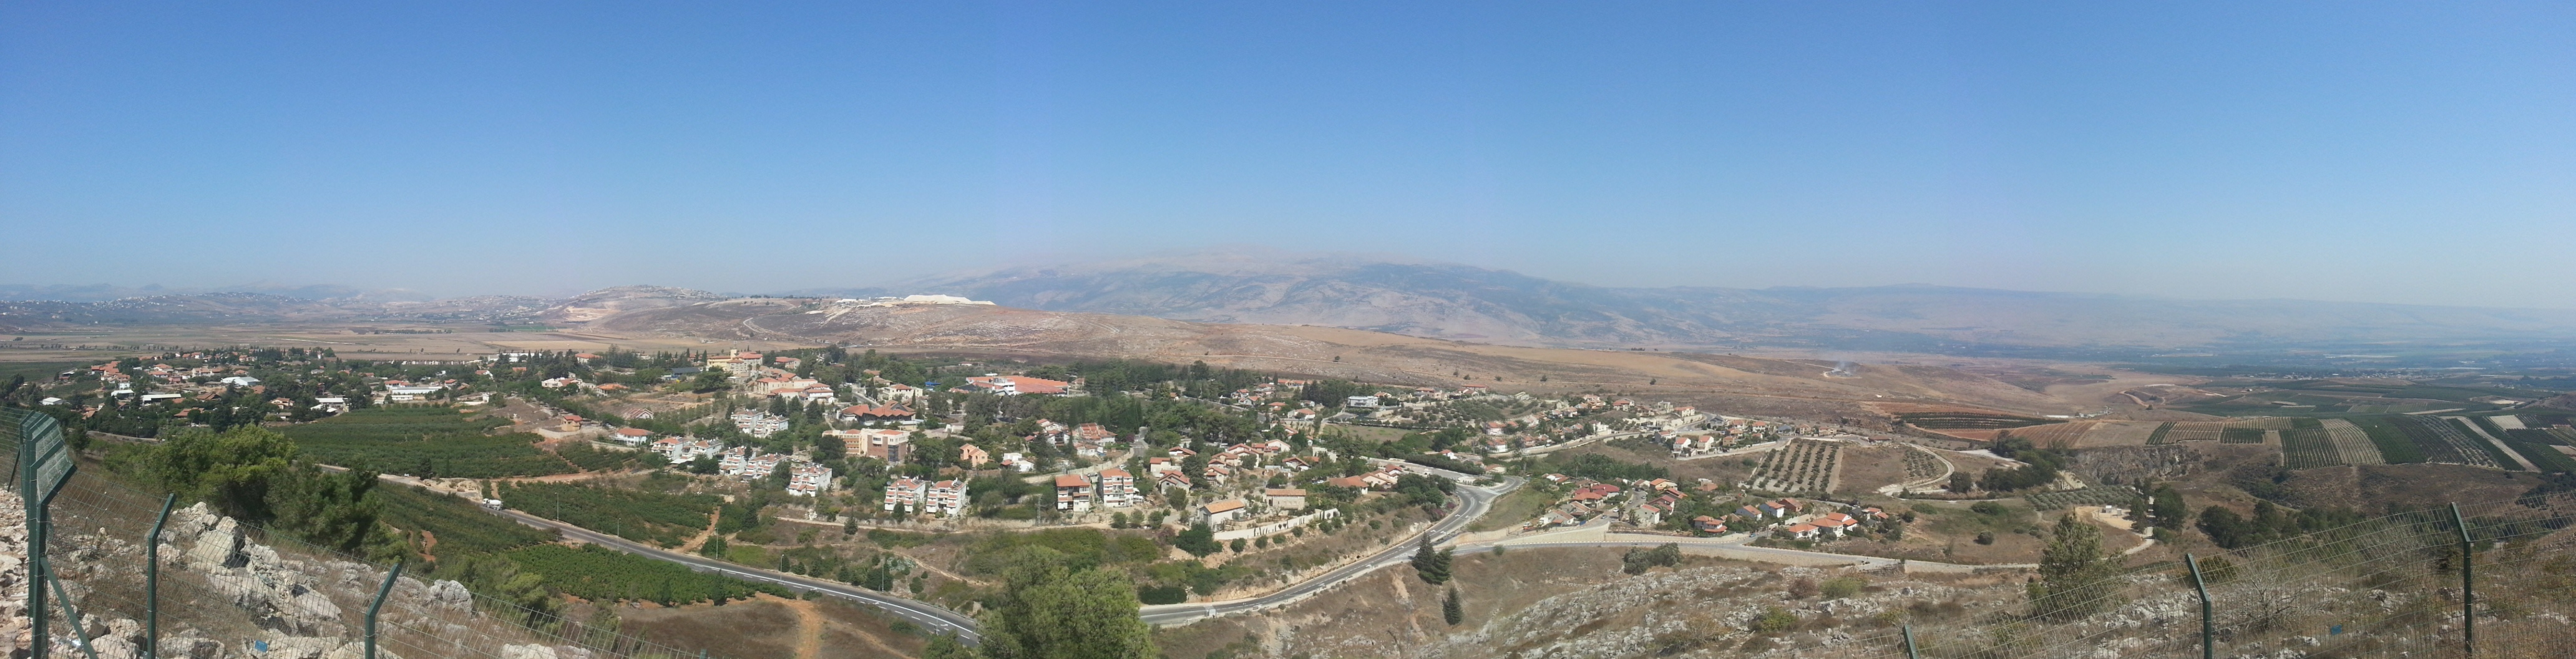 View over Metulla and into Lebanon from Mt Tzefiya